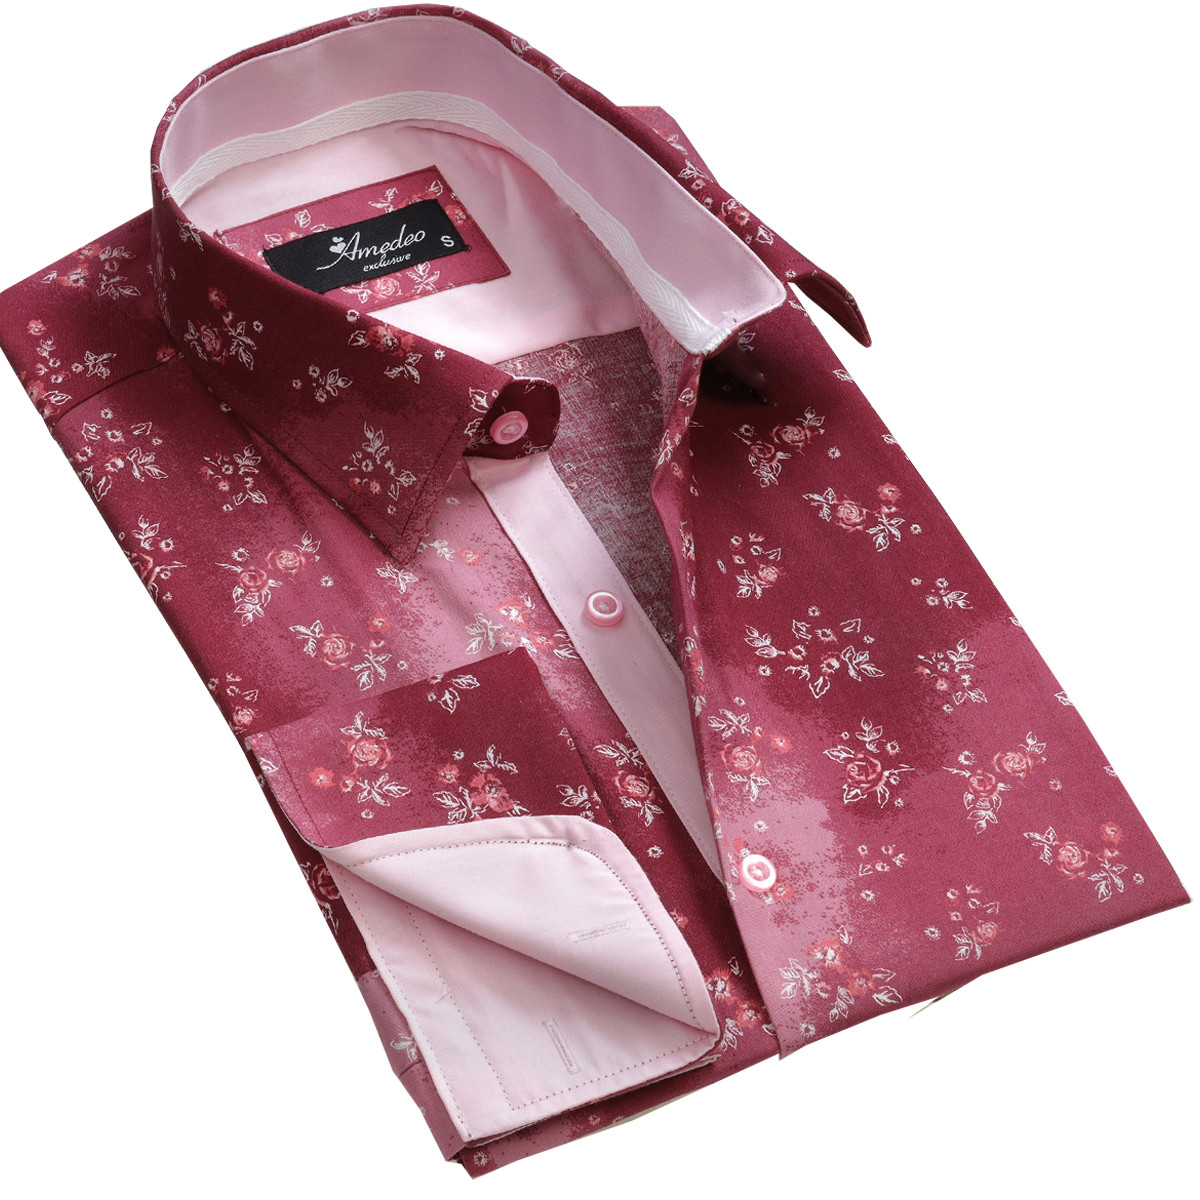 European Made & Designed Reversible Cuff Premium French Cuff Dress Shirt - red floral